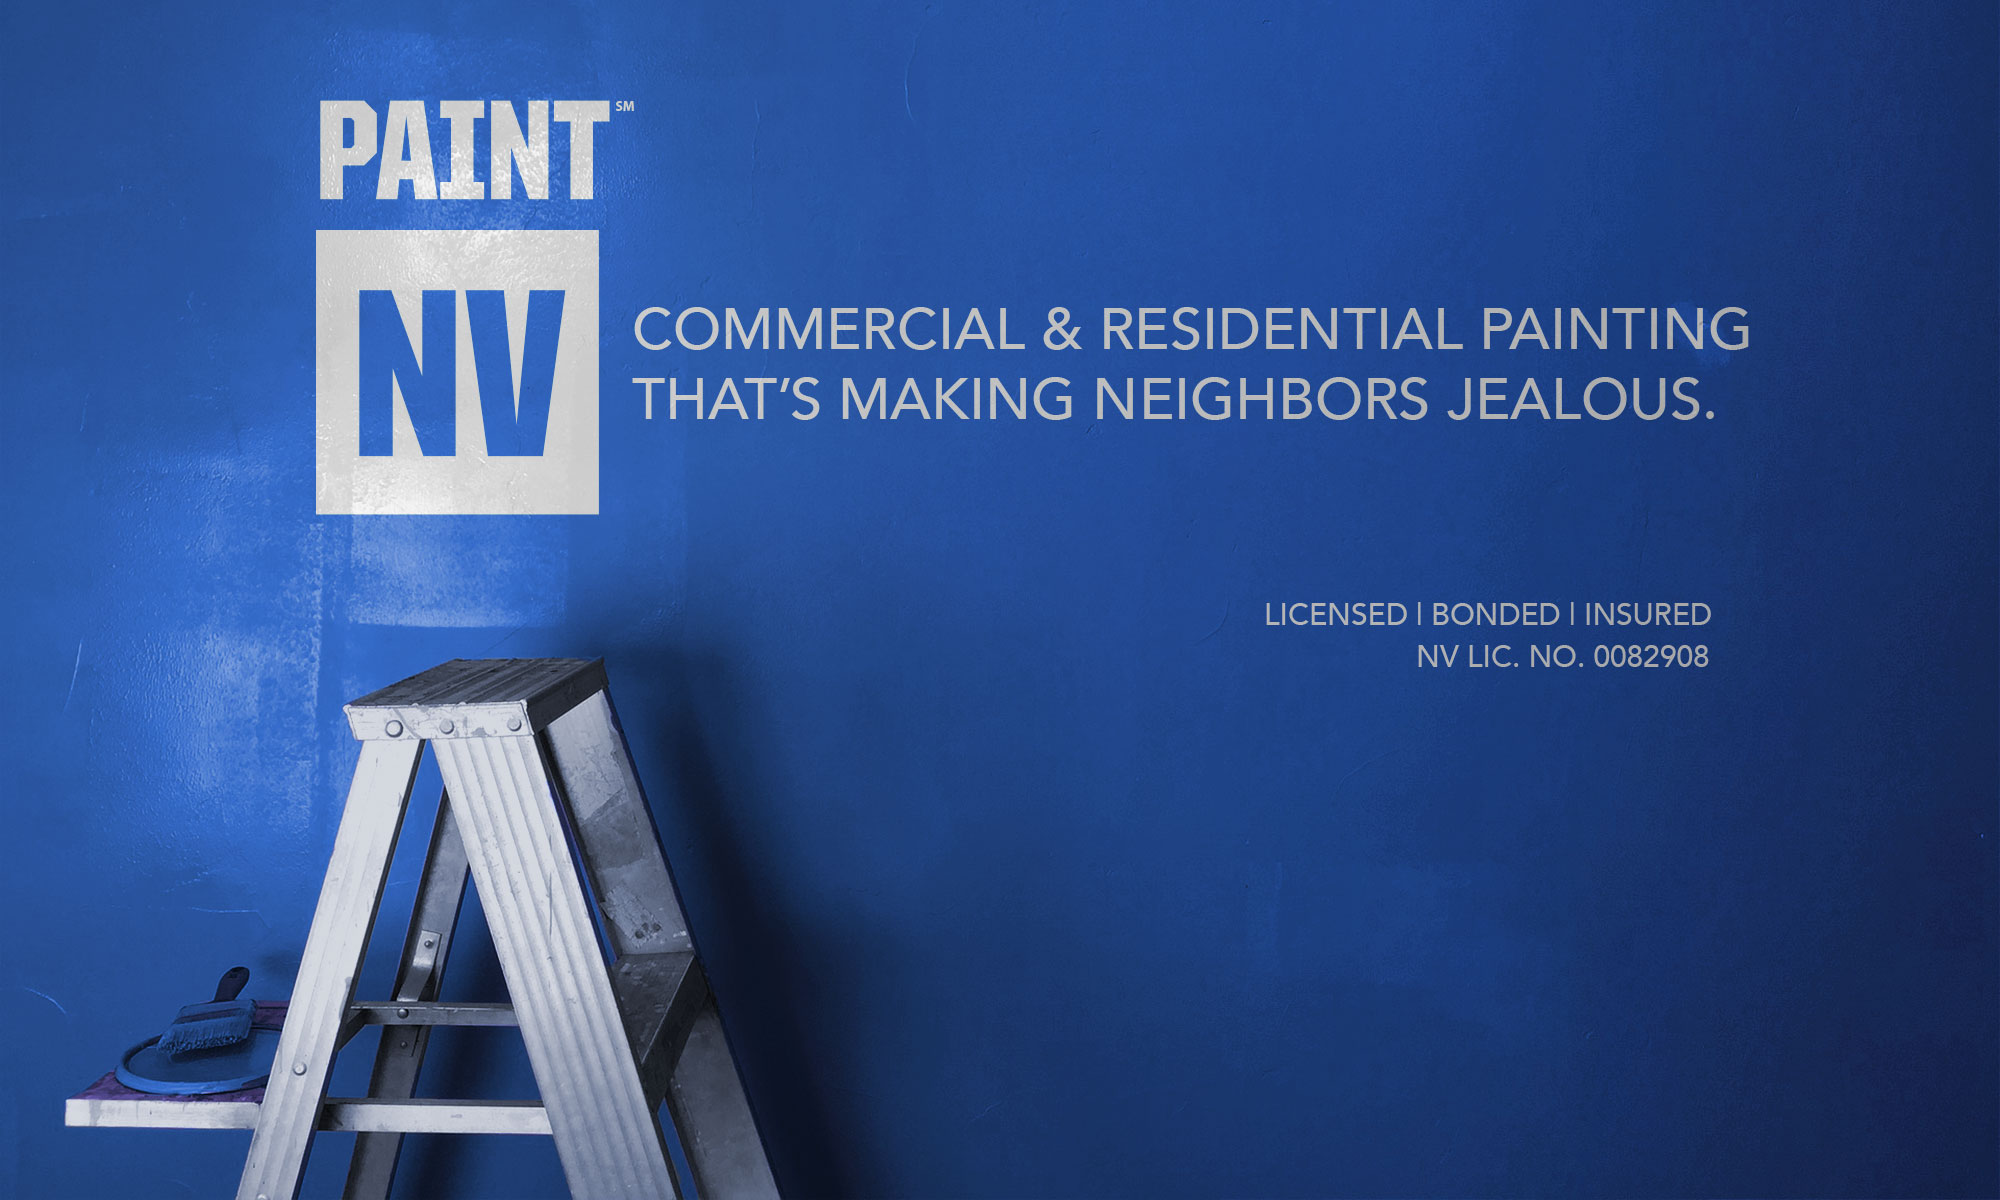 paint nv commercial and residential painting blue